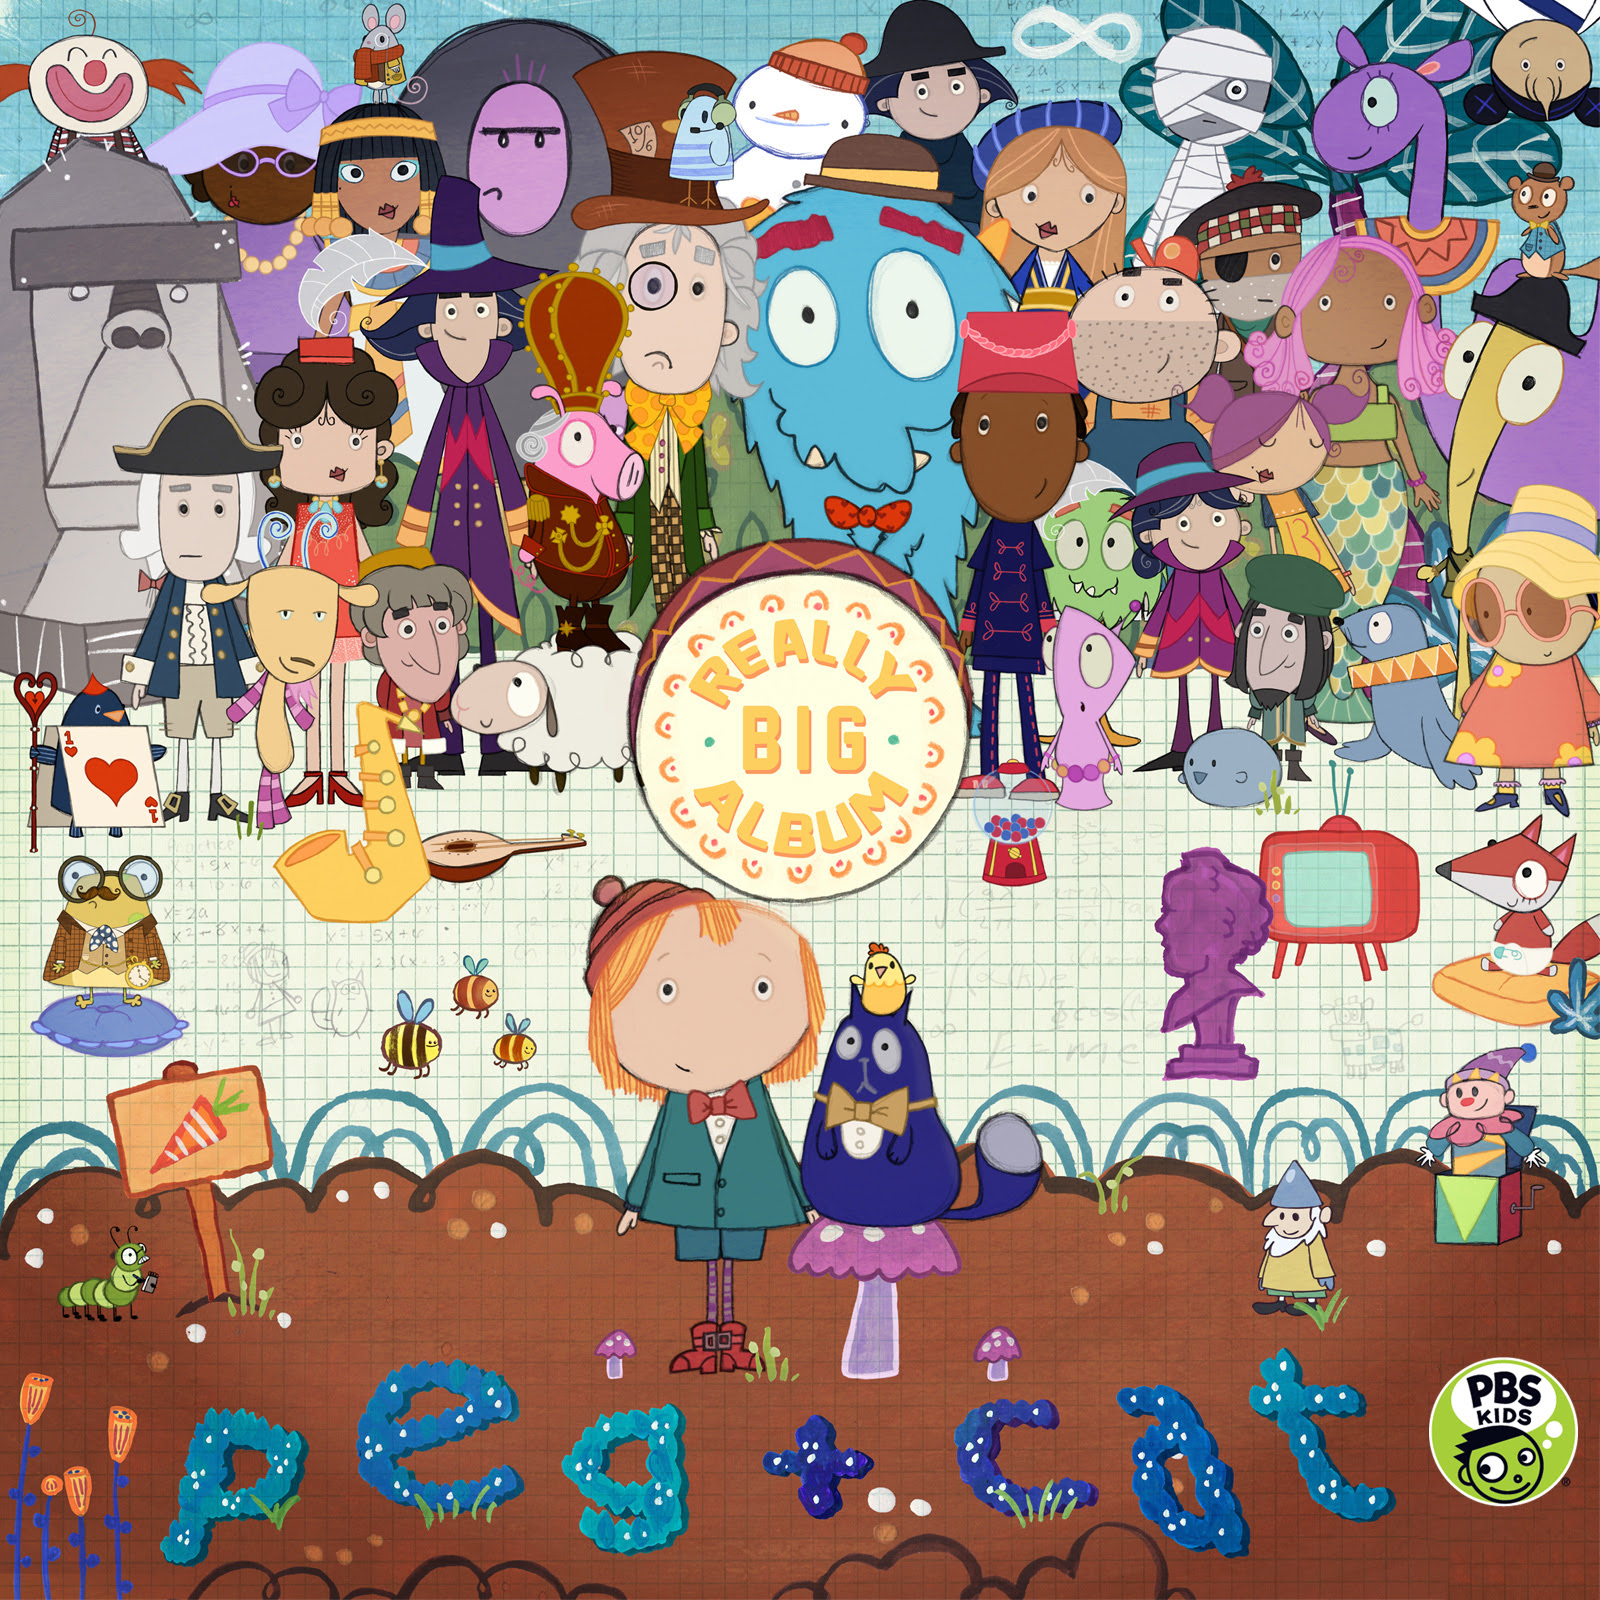 peg cat announce a really big album out with the kids